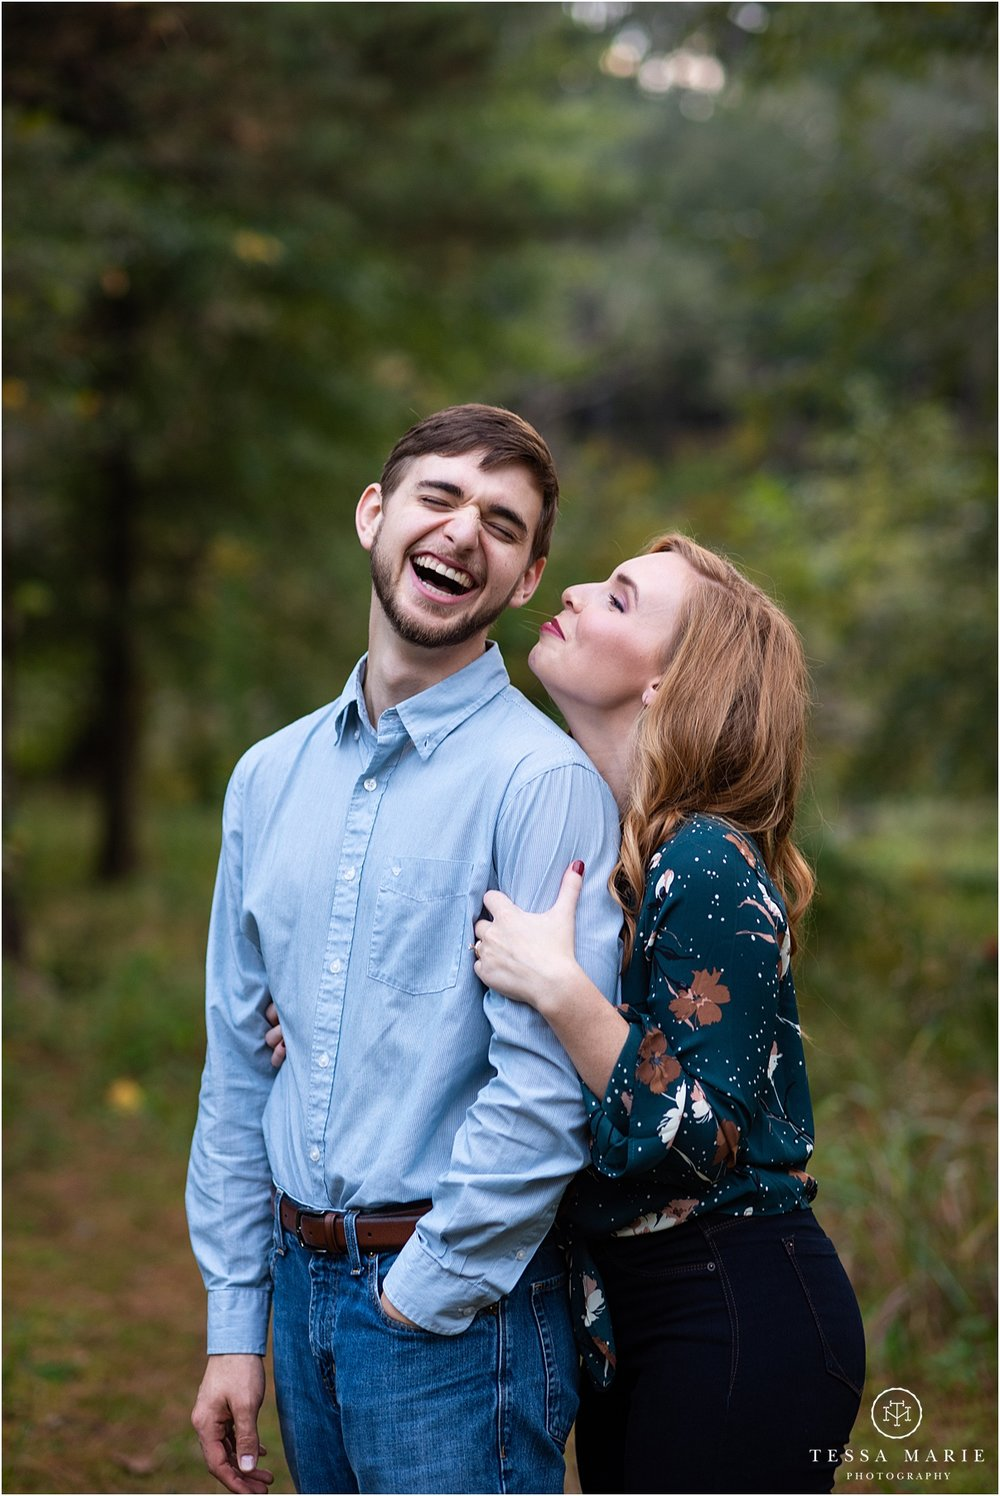 Tessa_marie_photography_wedding_photographer_engagement_pictures_river_engagement_0019.jpg